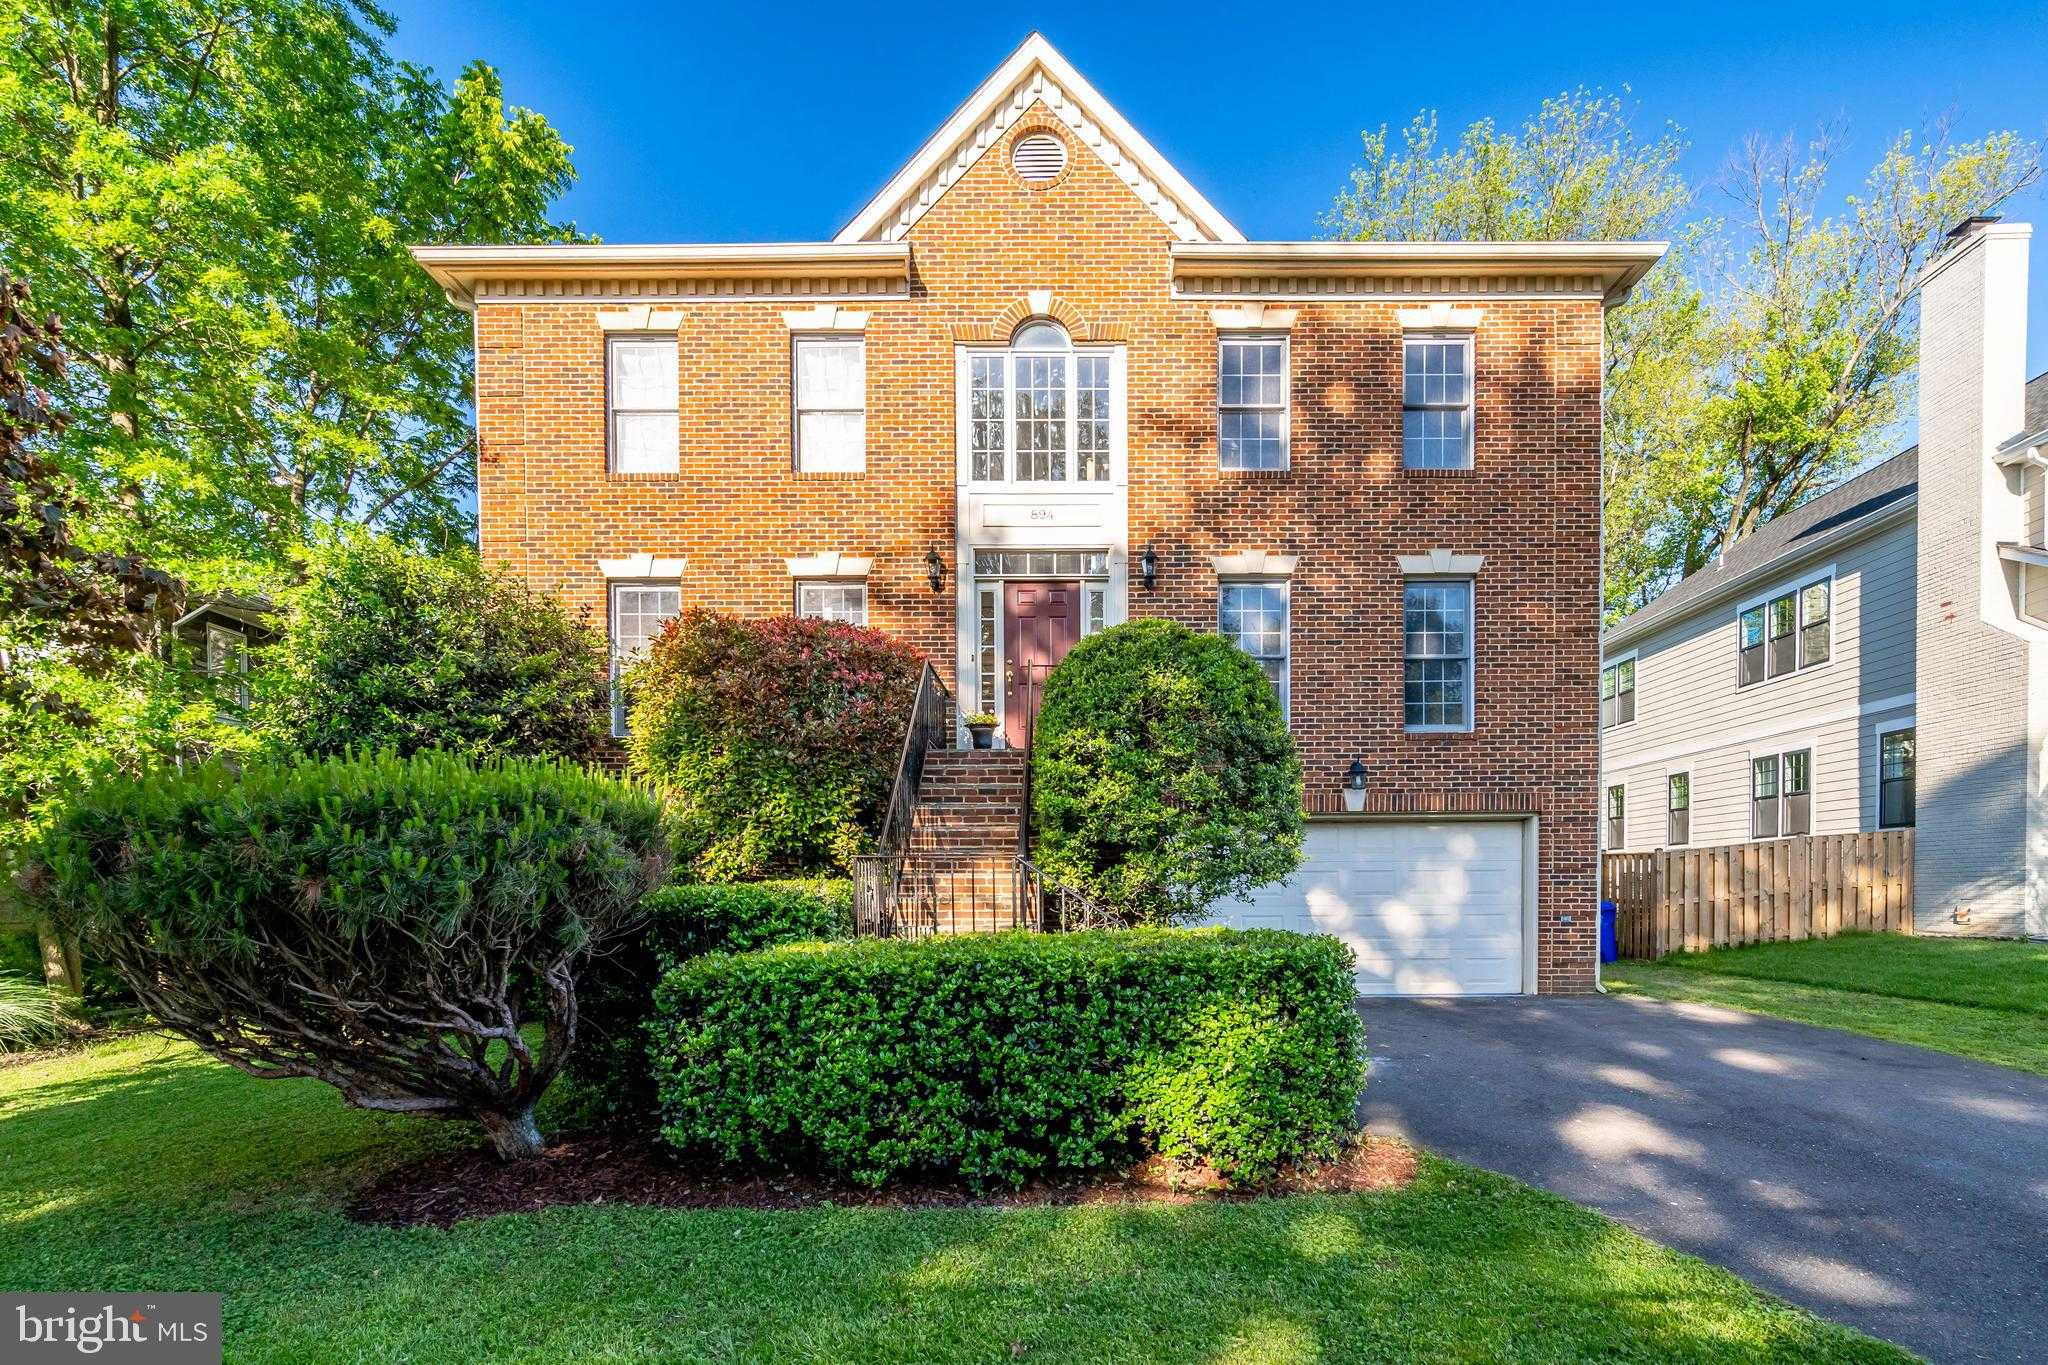 Incredible Homes For Sale In Arlington Chrissy And Lisa Remax West End Interior Design Ideas Helimdqseriescom